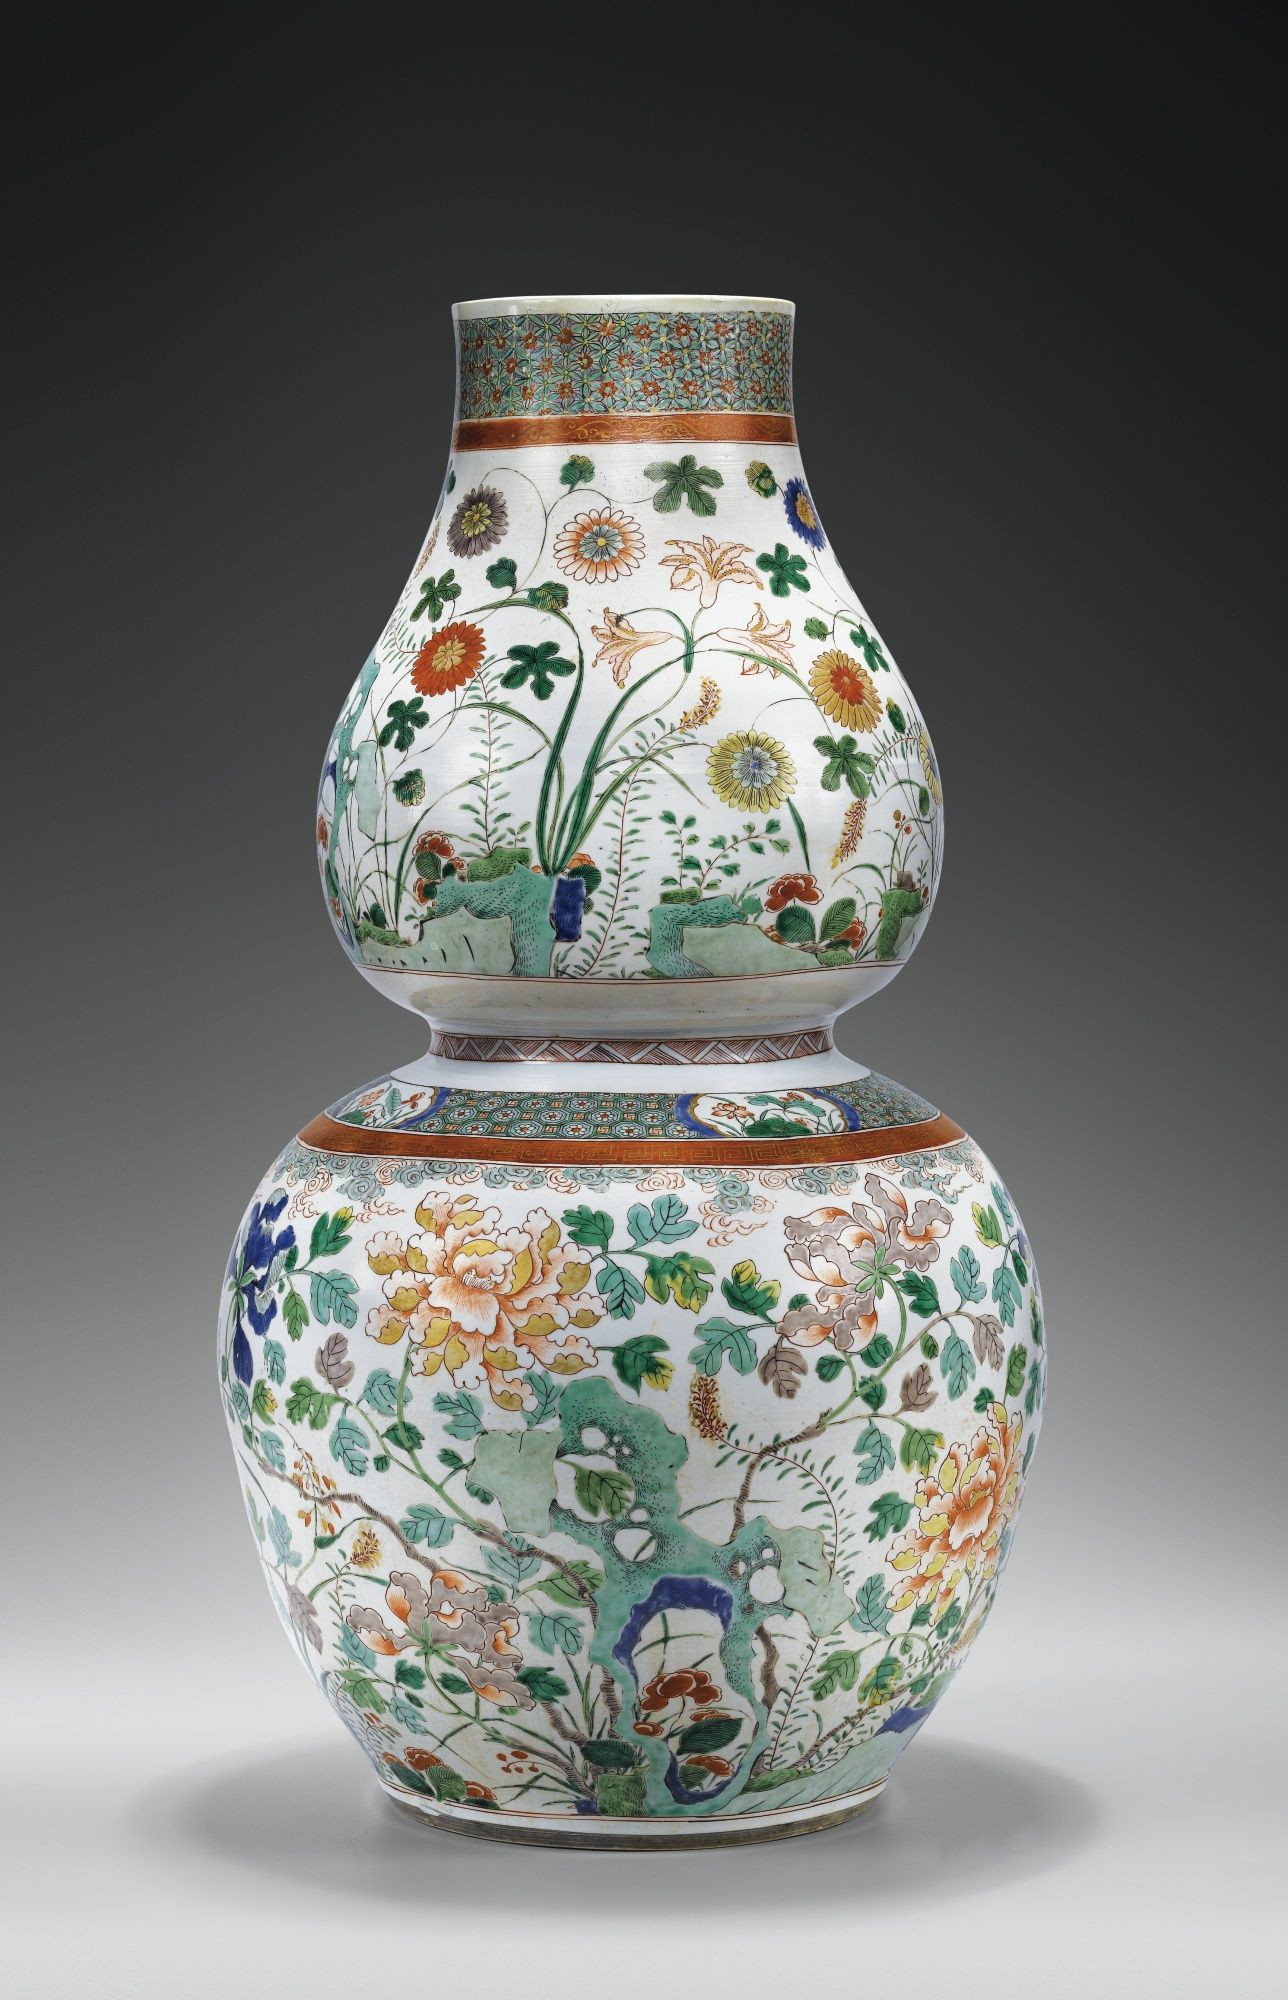 japanese vase shapes of an unusual large double gourd shaped famille verte vase qing in an unusual large double gourd shaped famille verte vase qing dynasty kangxi period 1662 1722